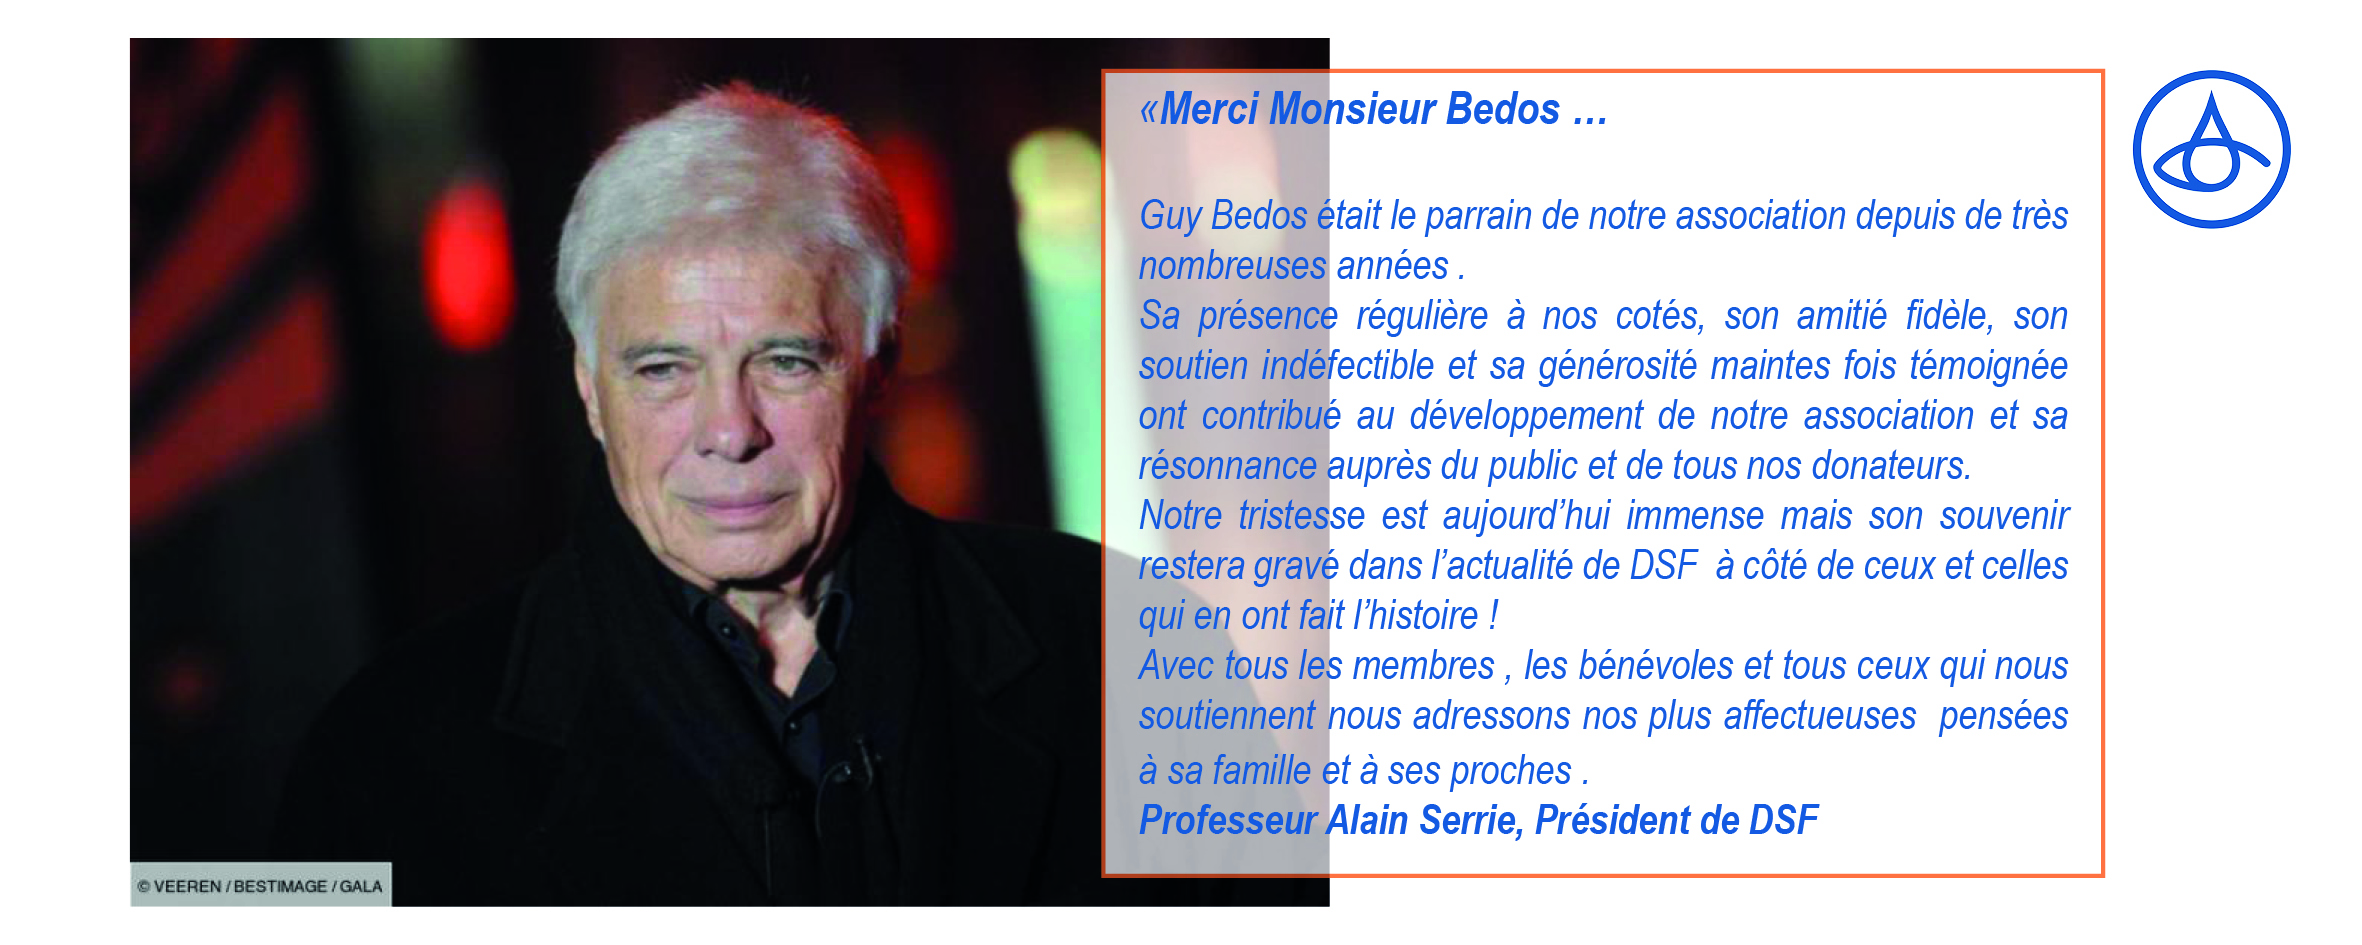 Hommage Guy Bedos